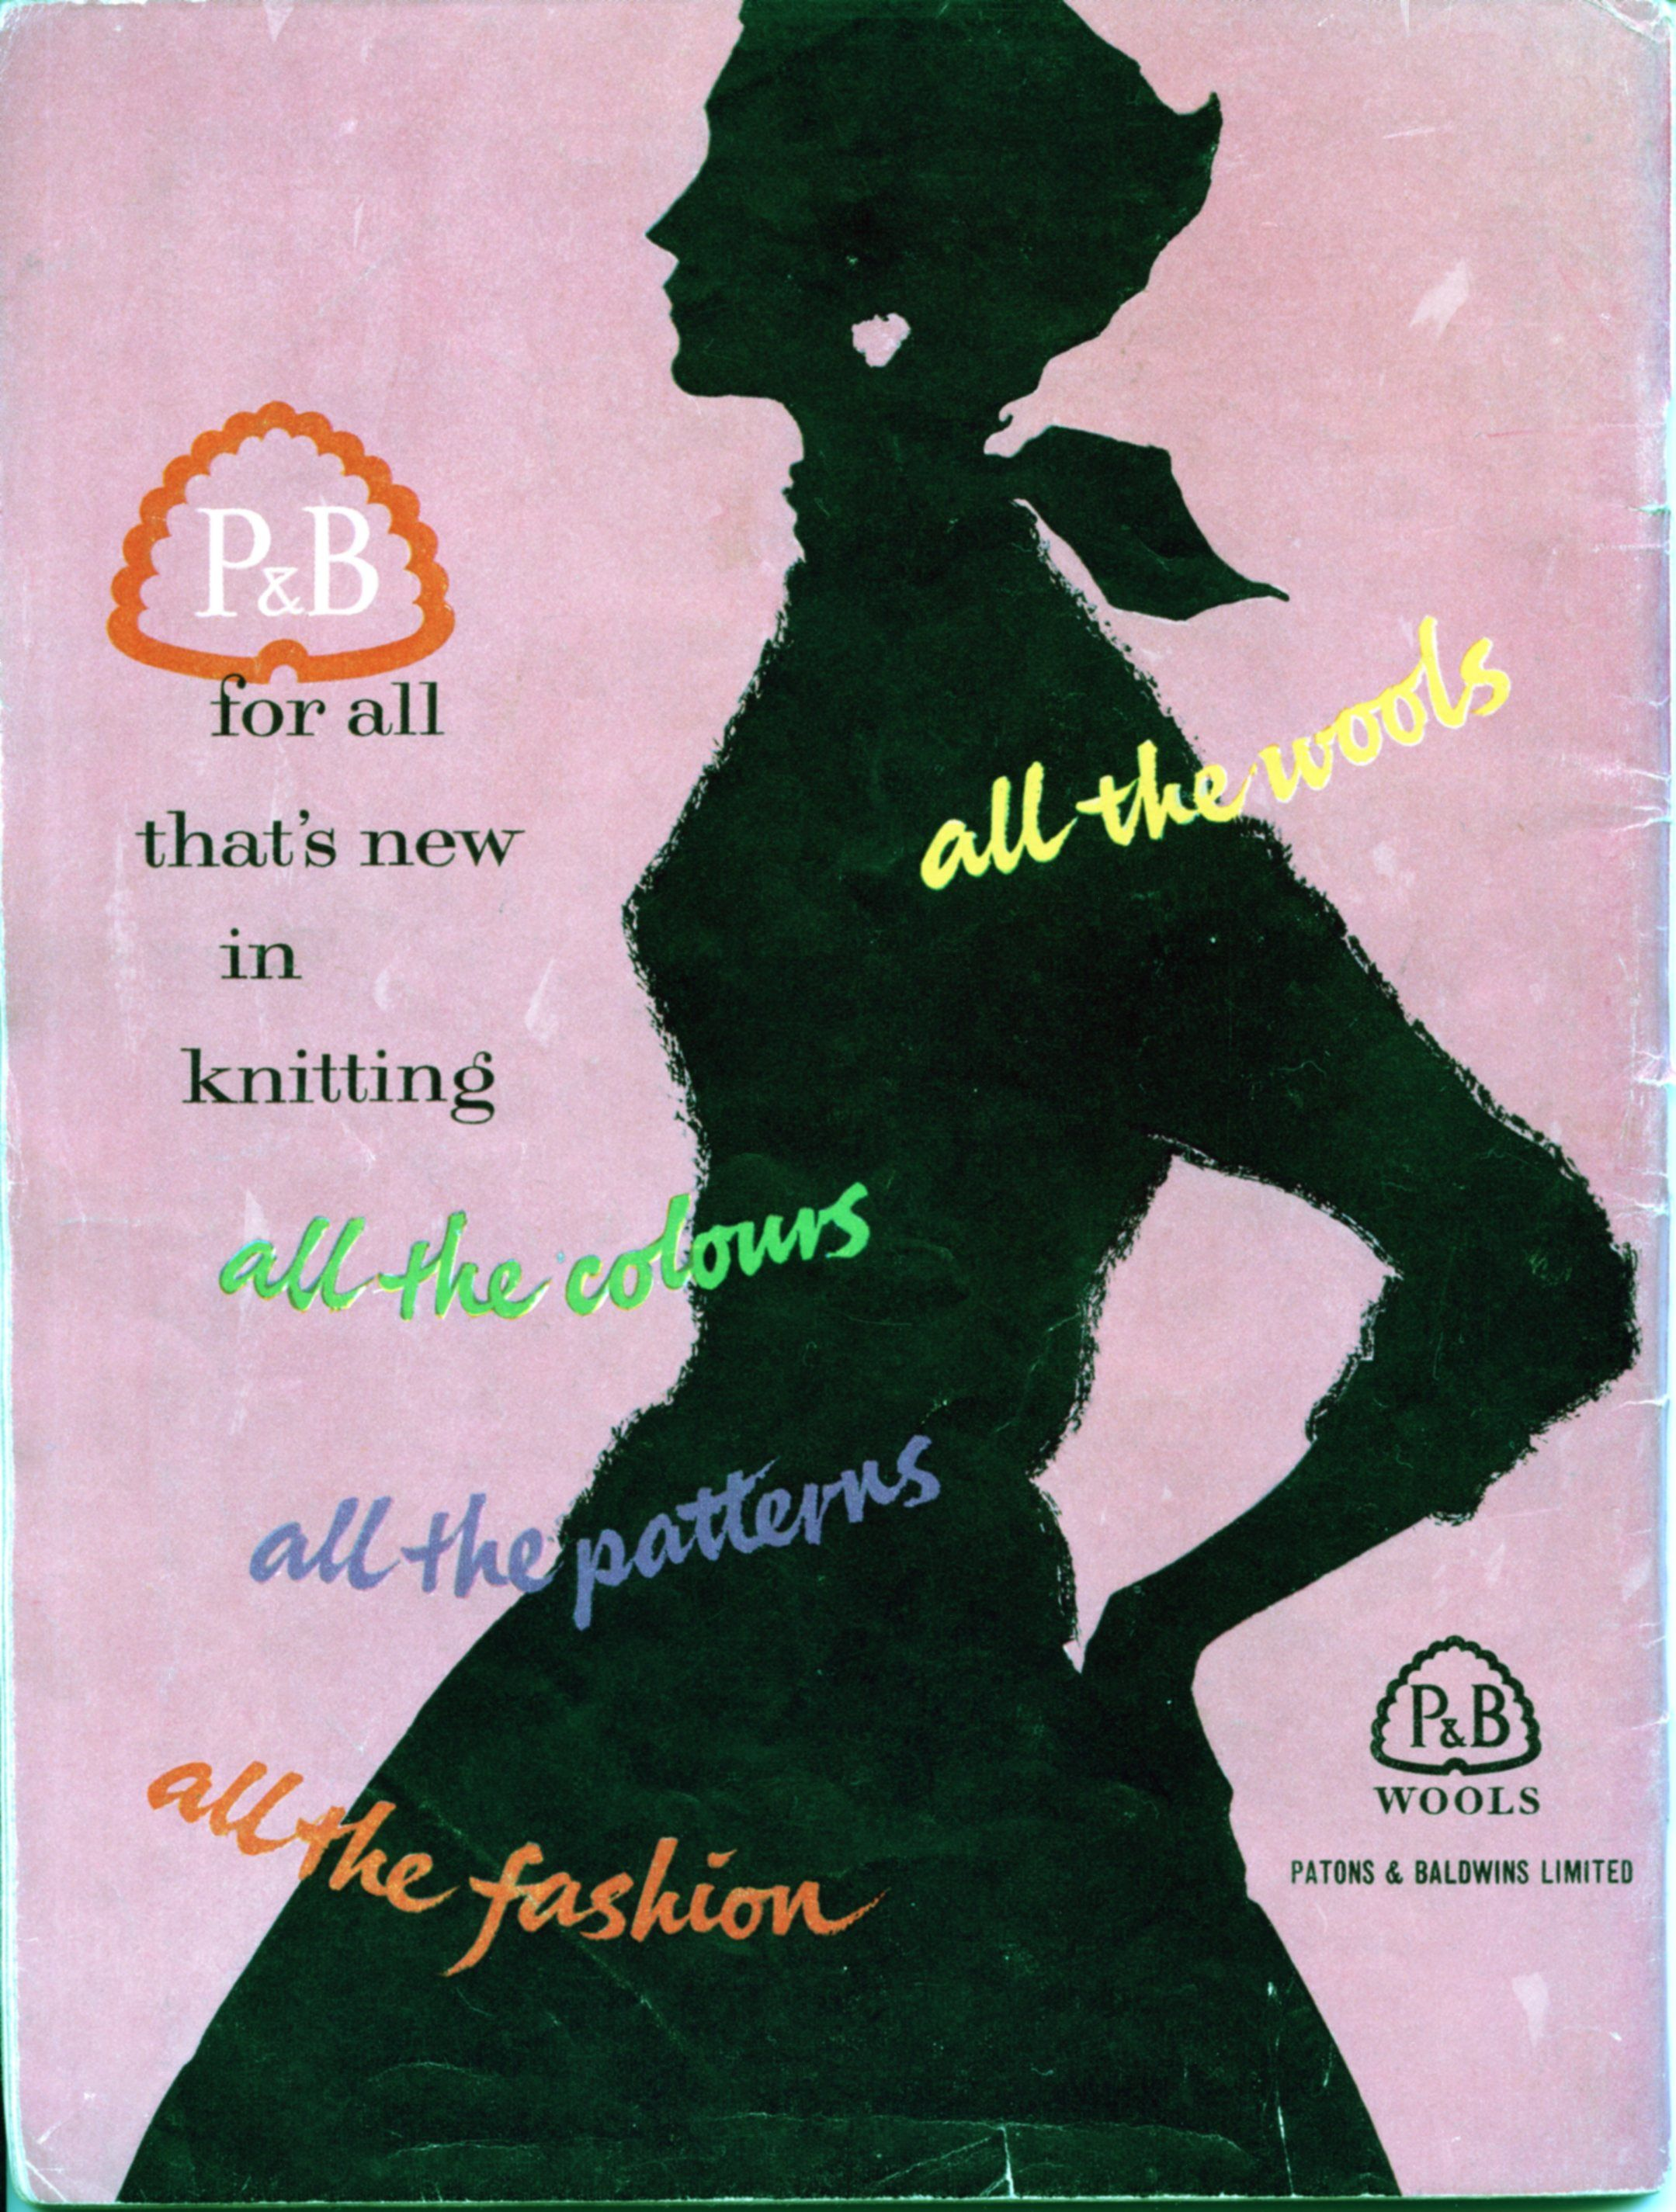 A stylish P wool advertisement from the 1950s. I love this silhouette which epitomises the style of the decade.